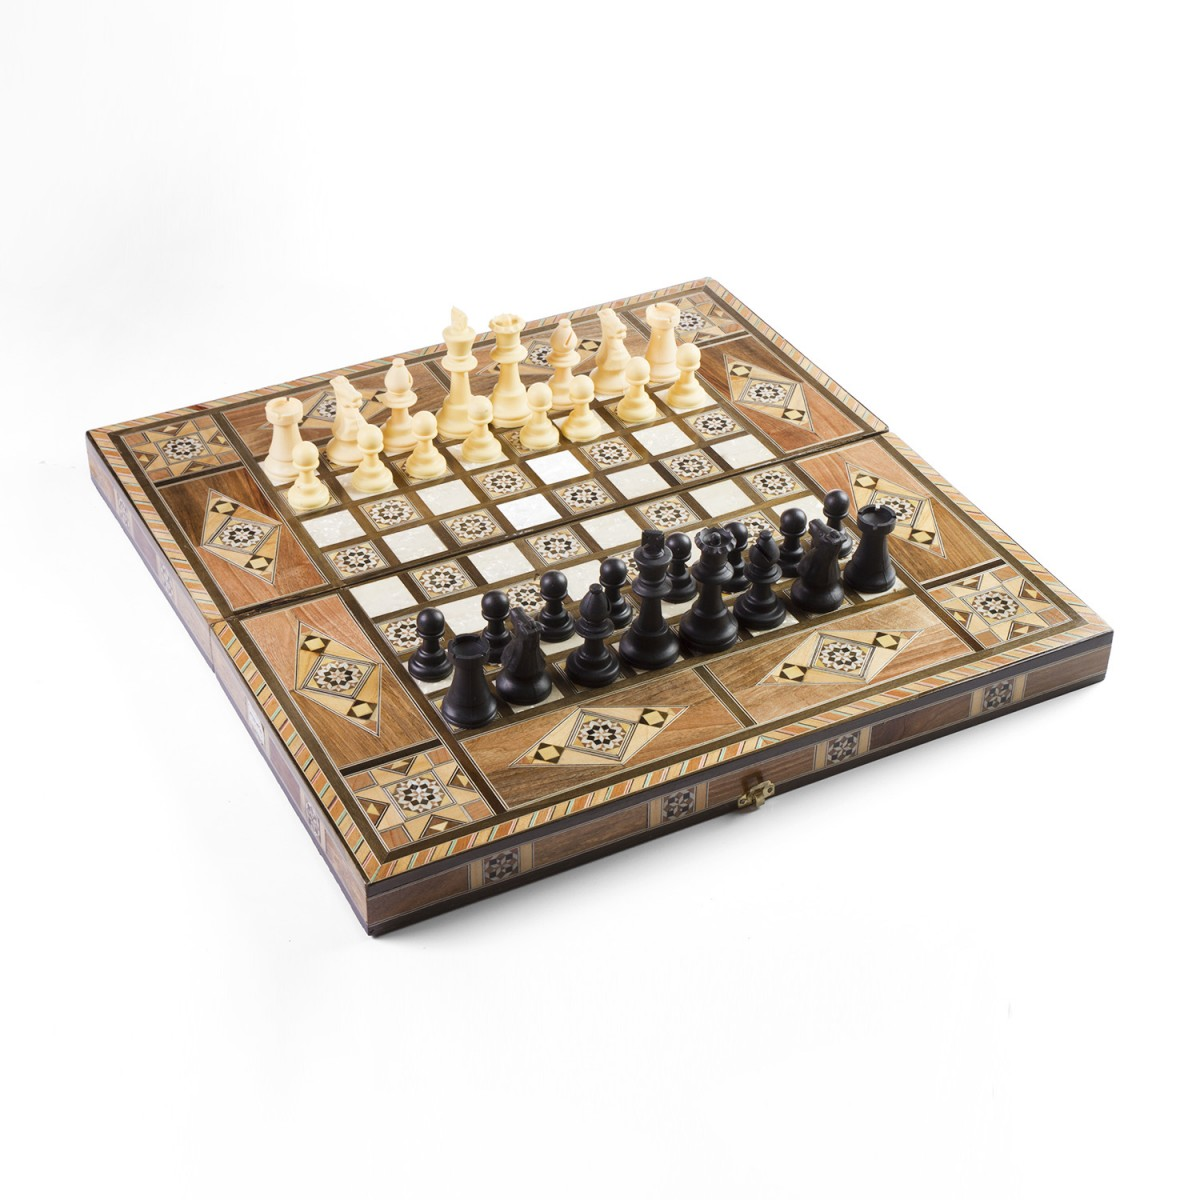 Damascene wooden chess board